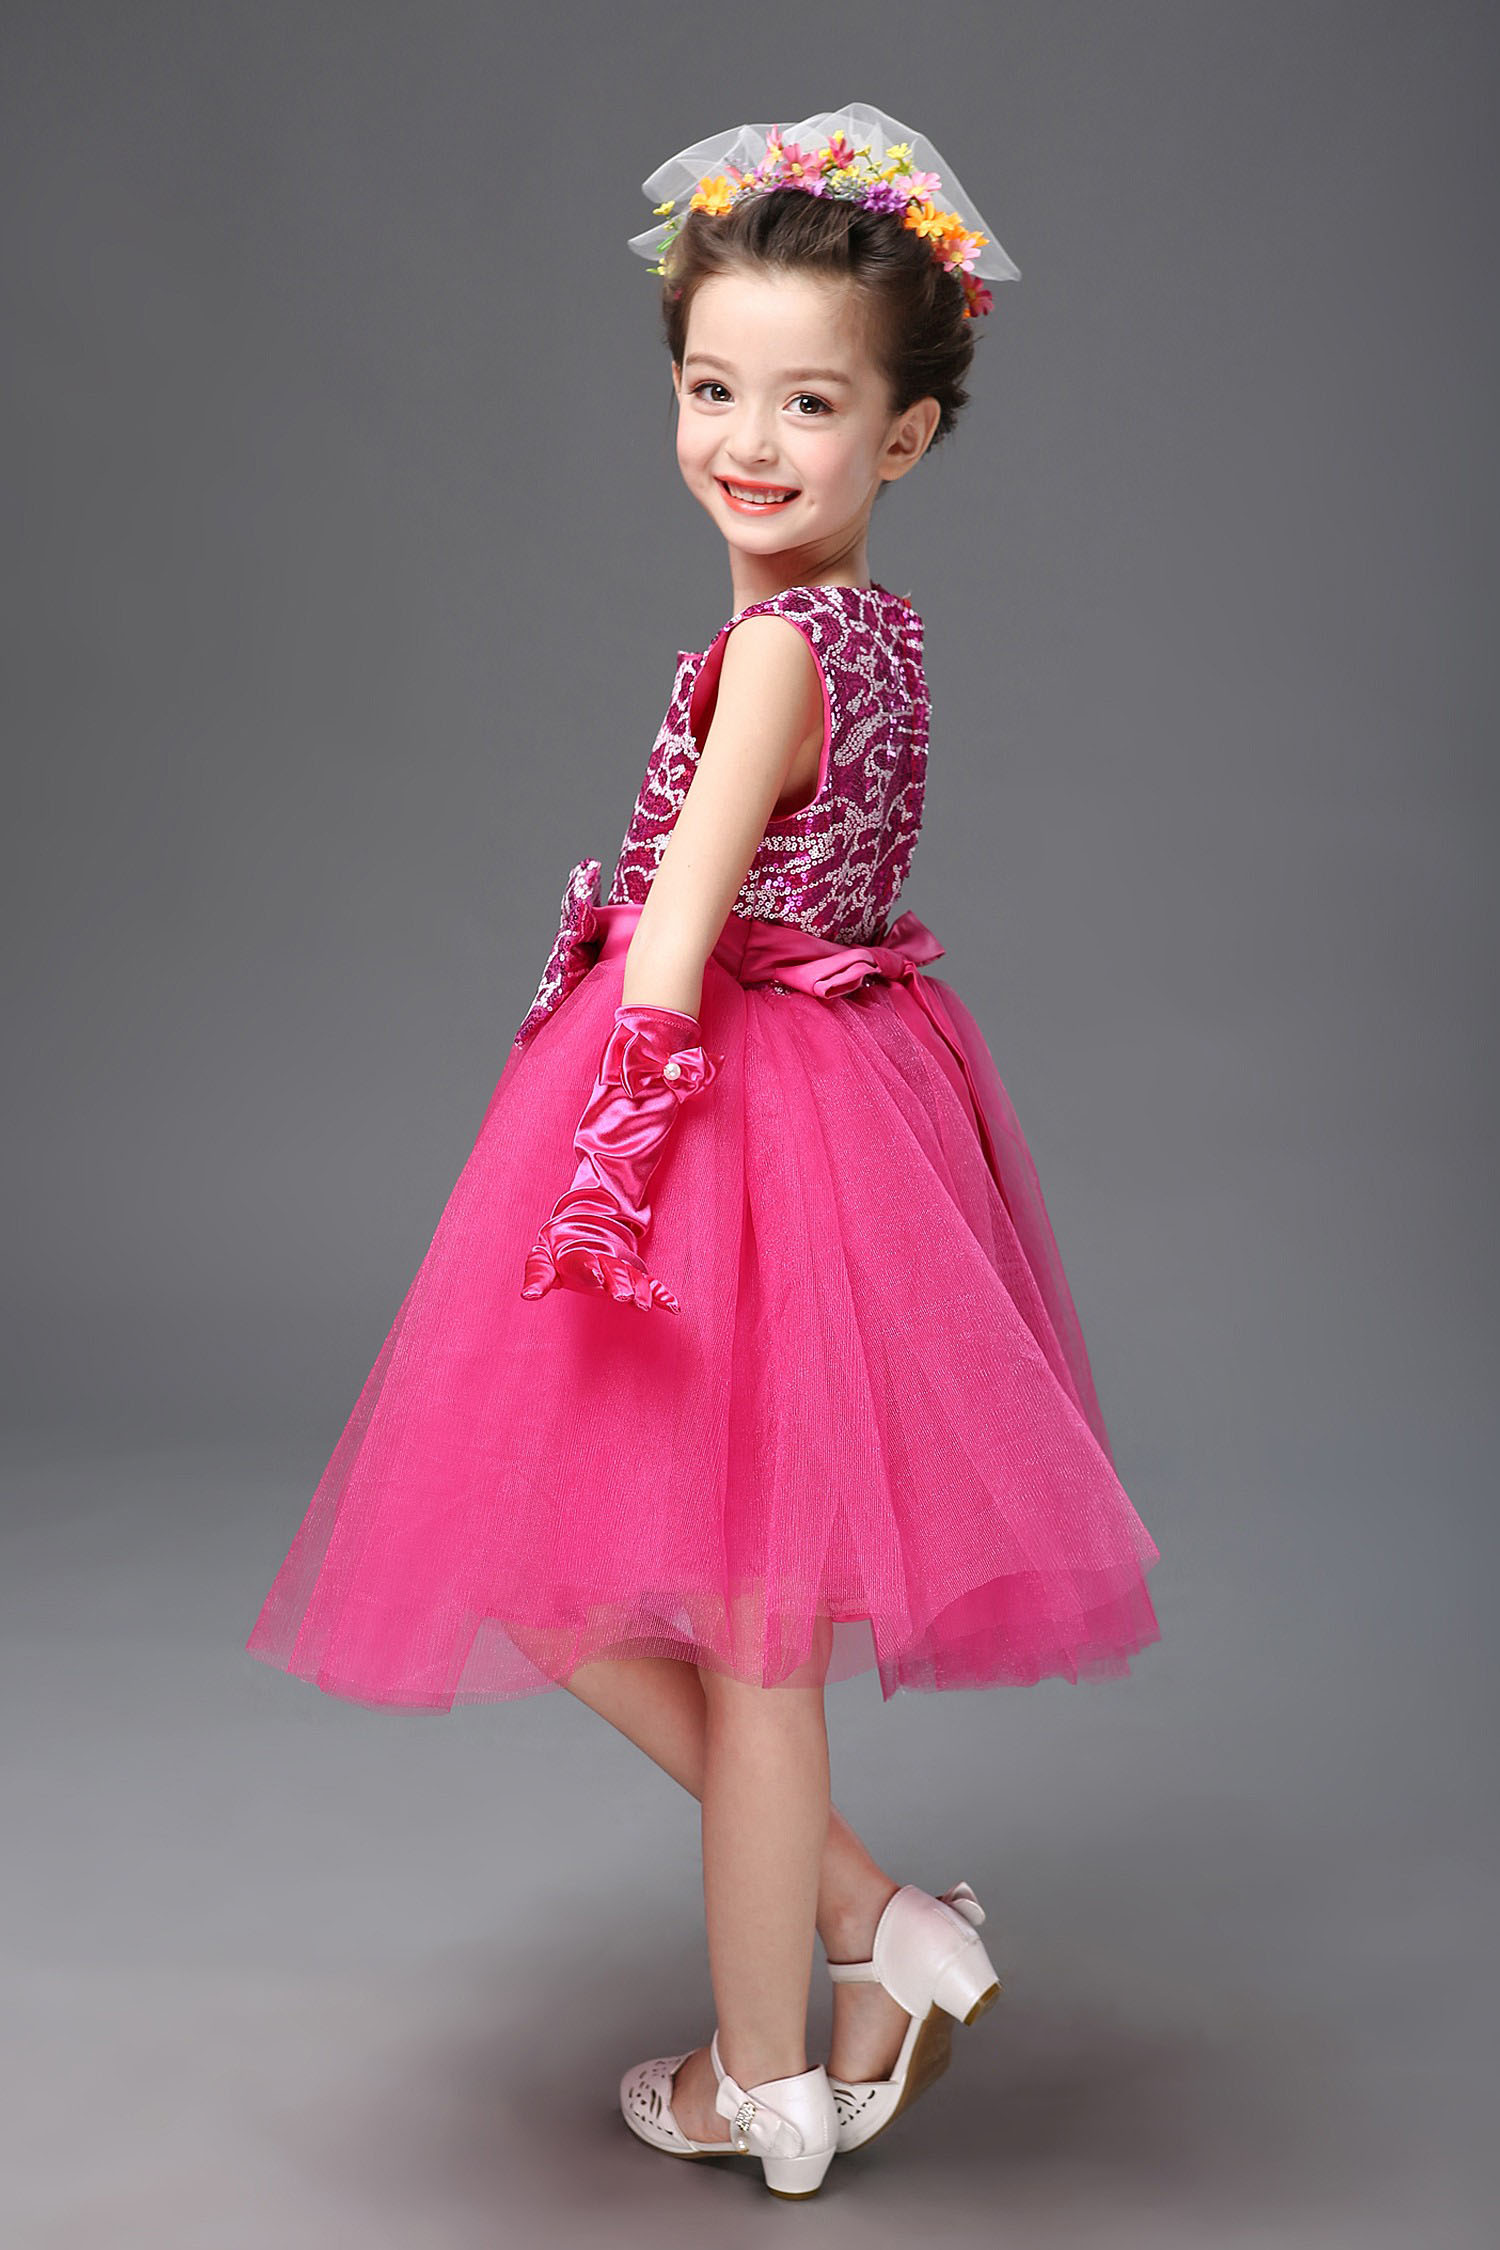 dance formal shoes sizes 4,5,6,7,8,9,10 Girls//infant dark pink sparkly party